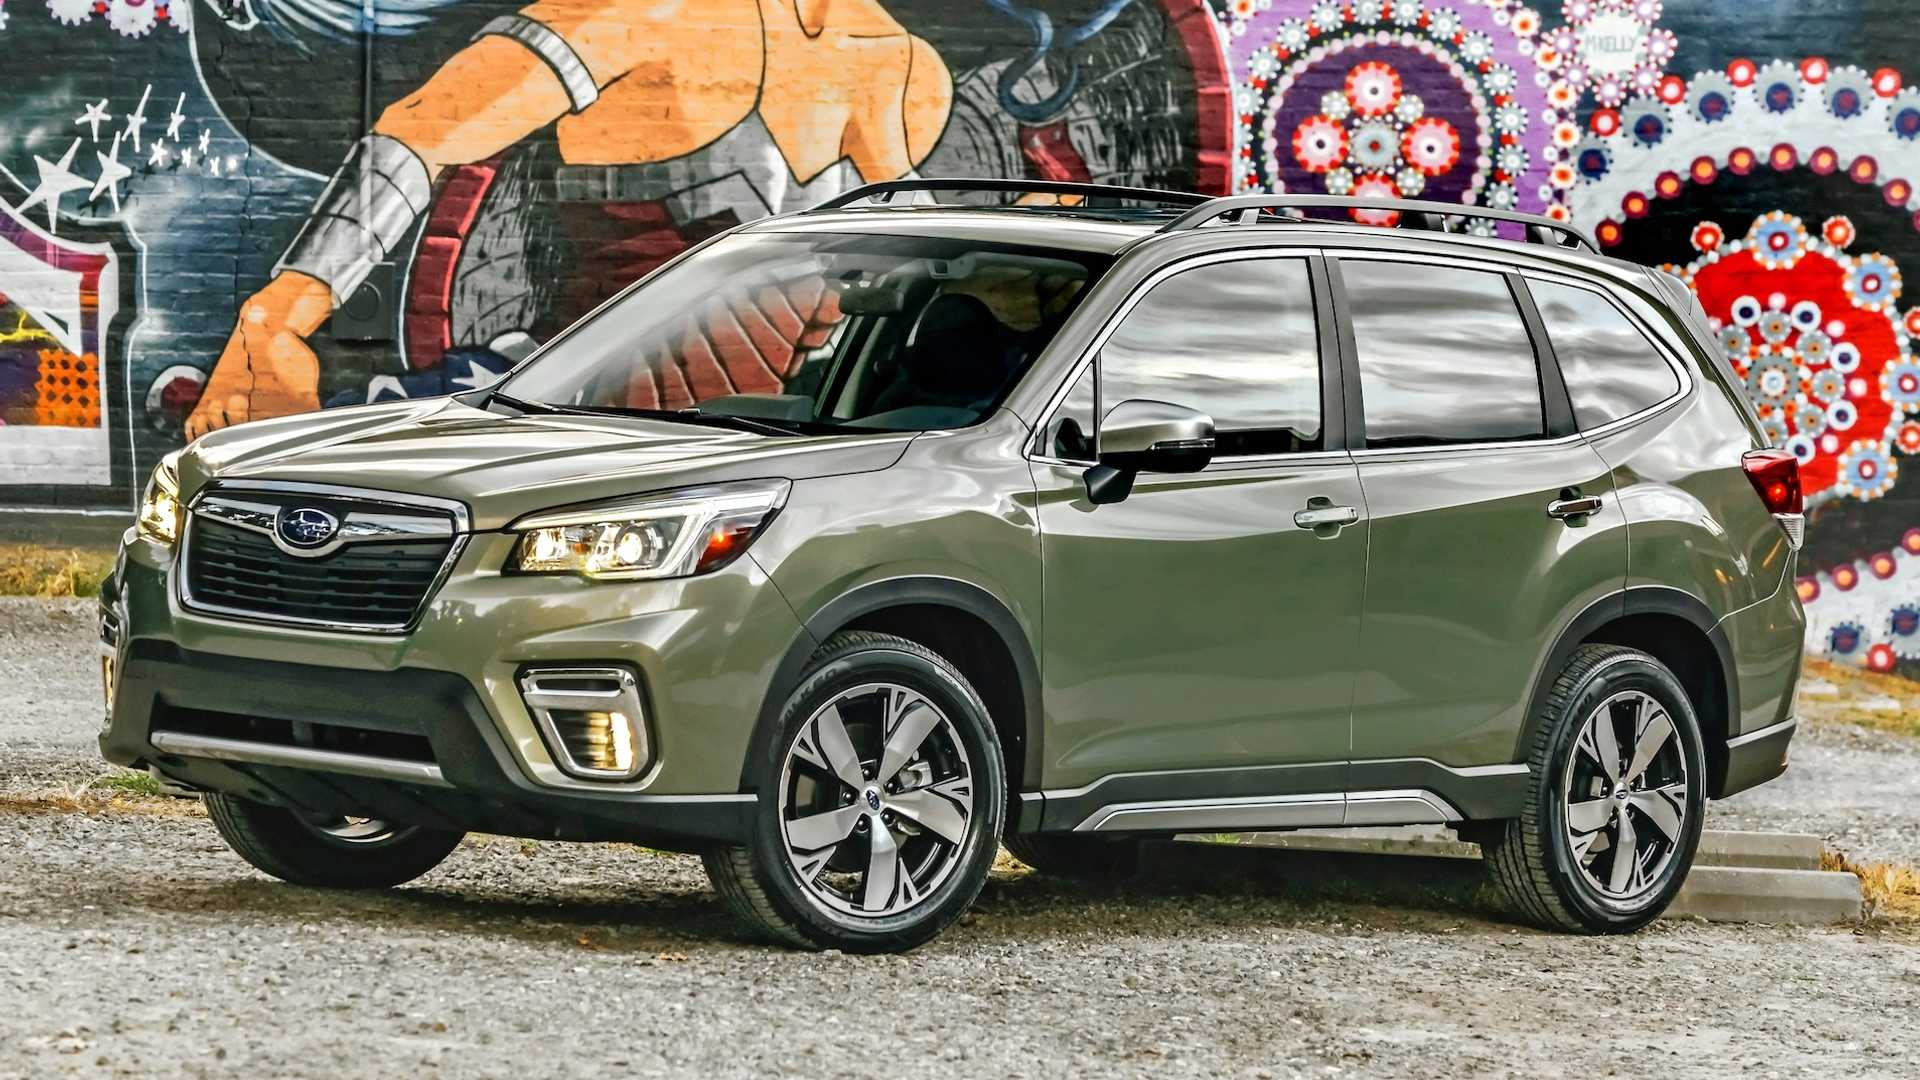 27 All New Subaru Forester All New 2020 Pricing